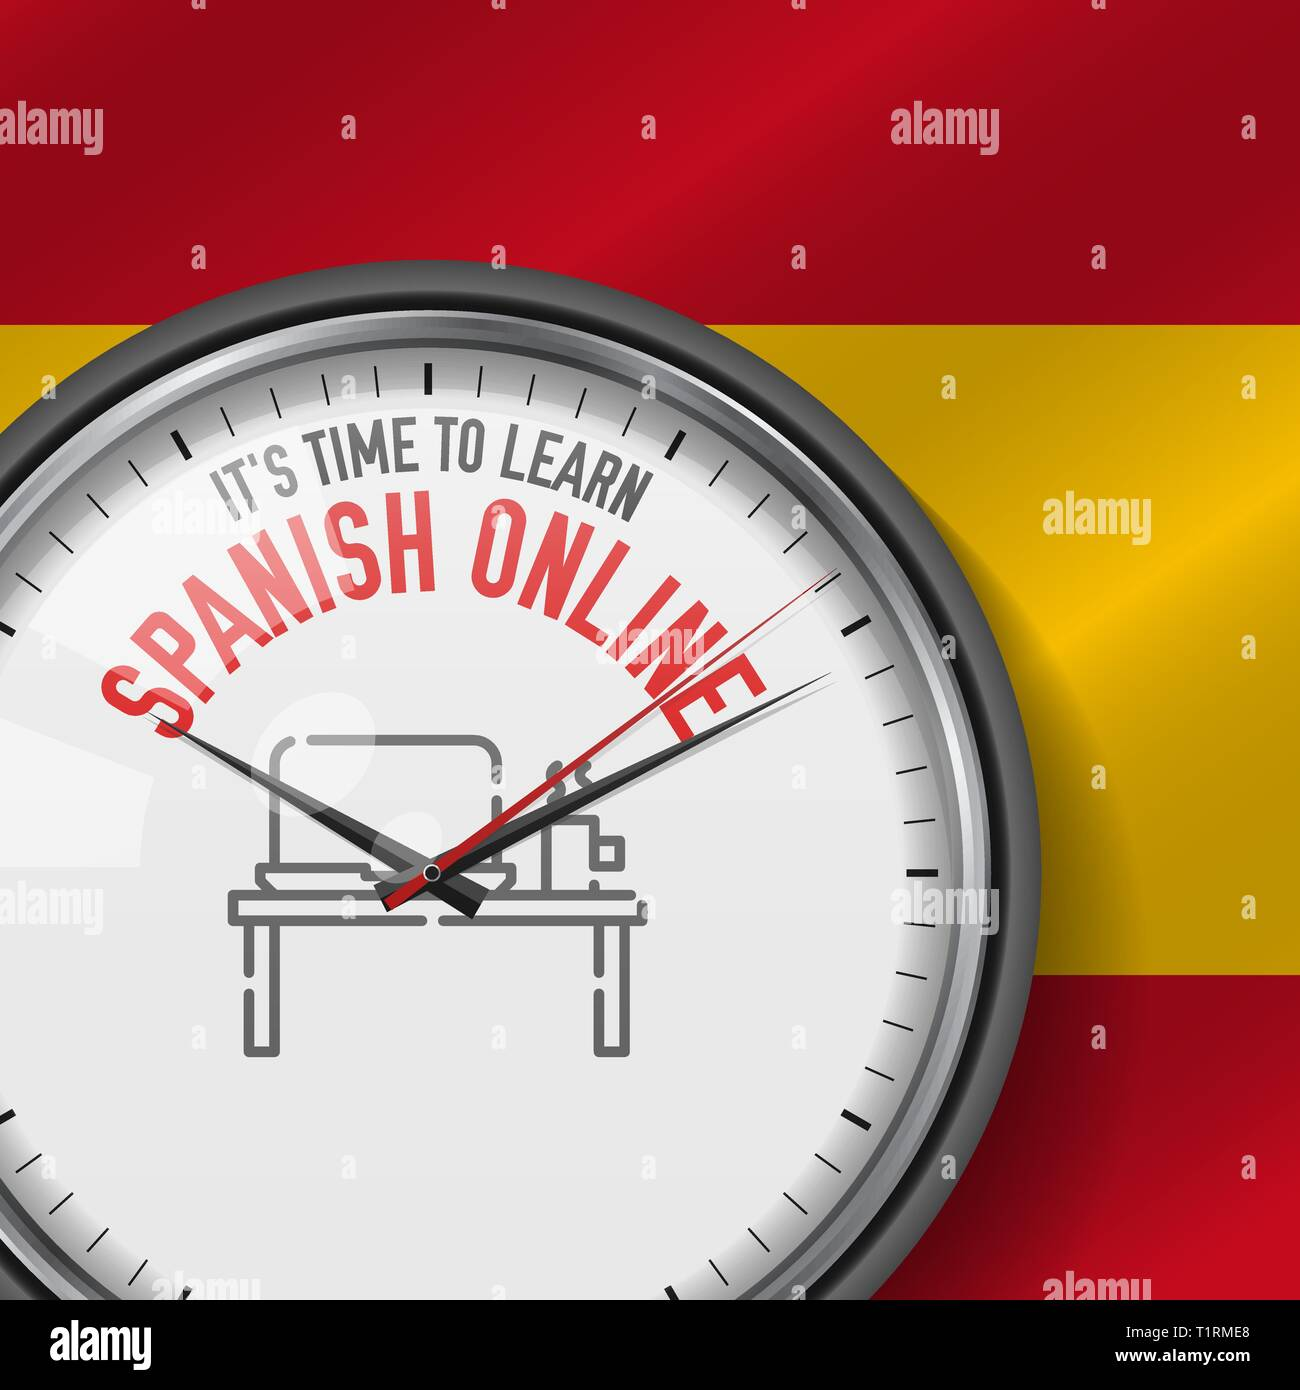 Online Analog Clock It S Time To Learn Spanish Online White Vector Clock With